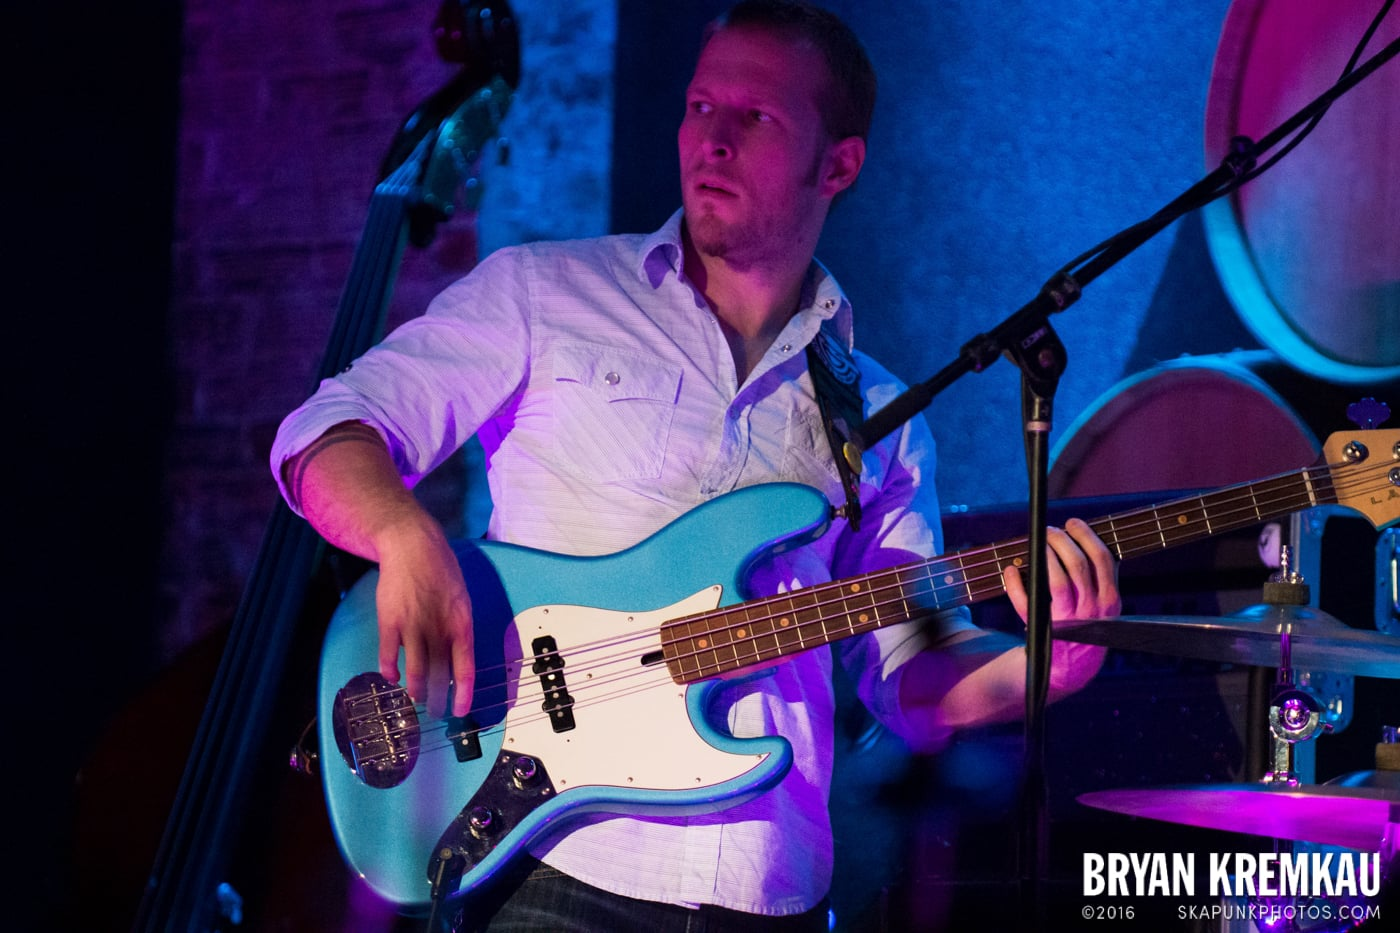 Carbon Leaf @ City Winery, NYC - July 11th 2013 - Bryan Kremkau (6)